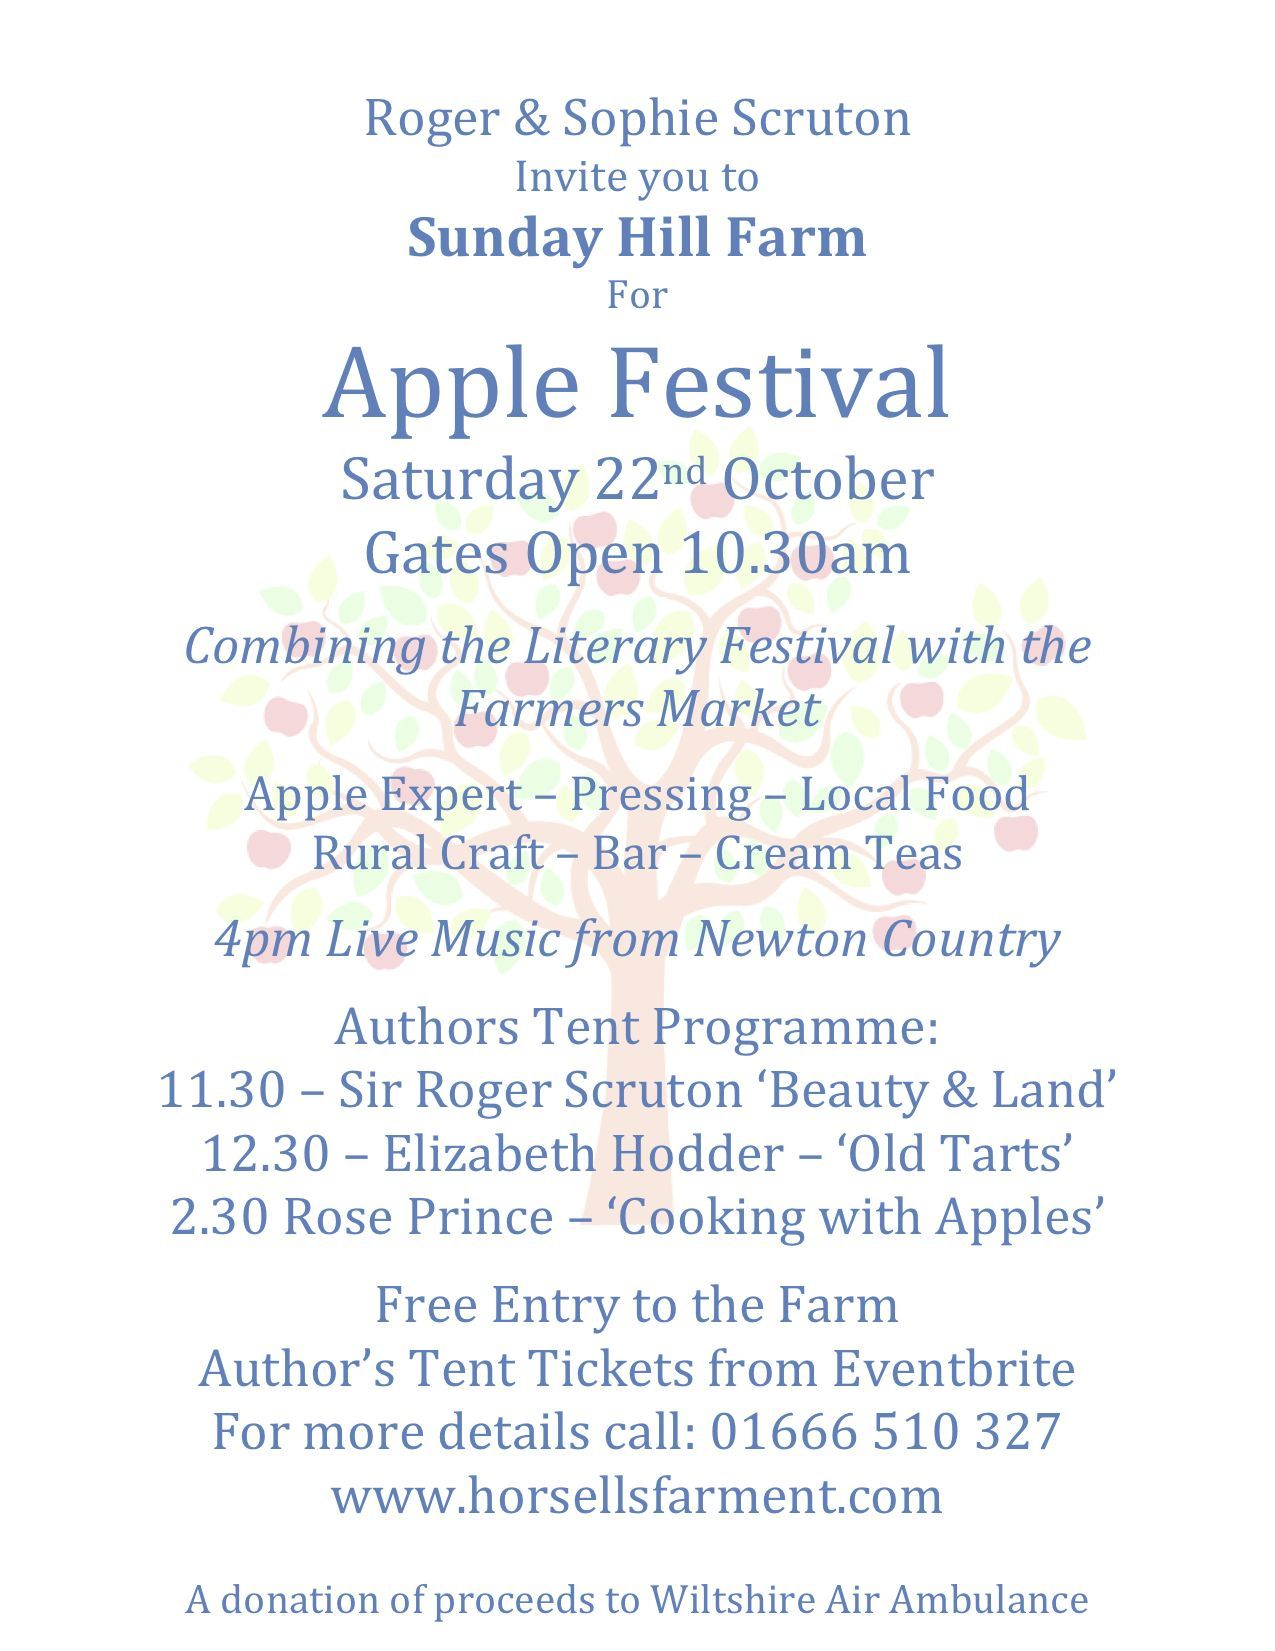 Apple Festival Invitation